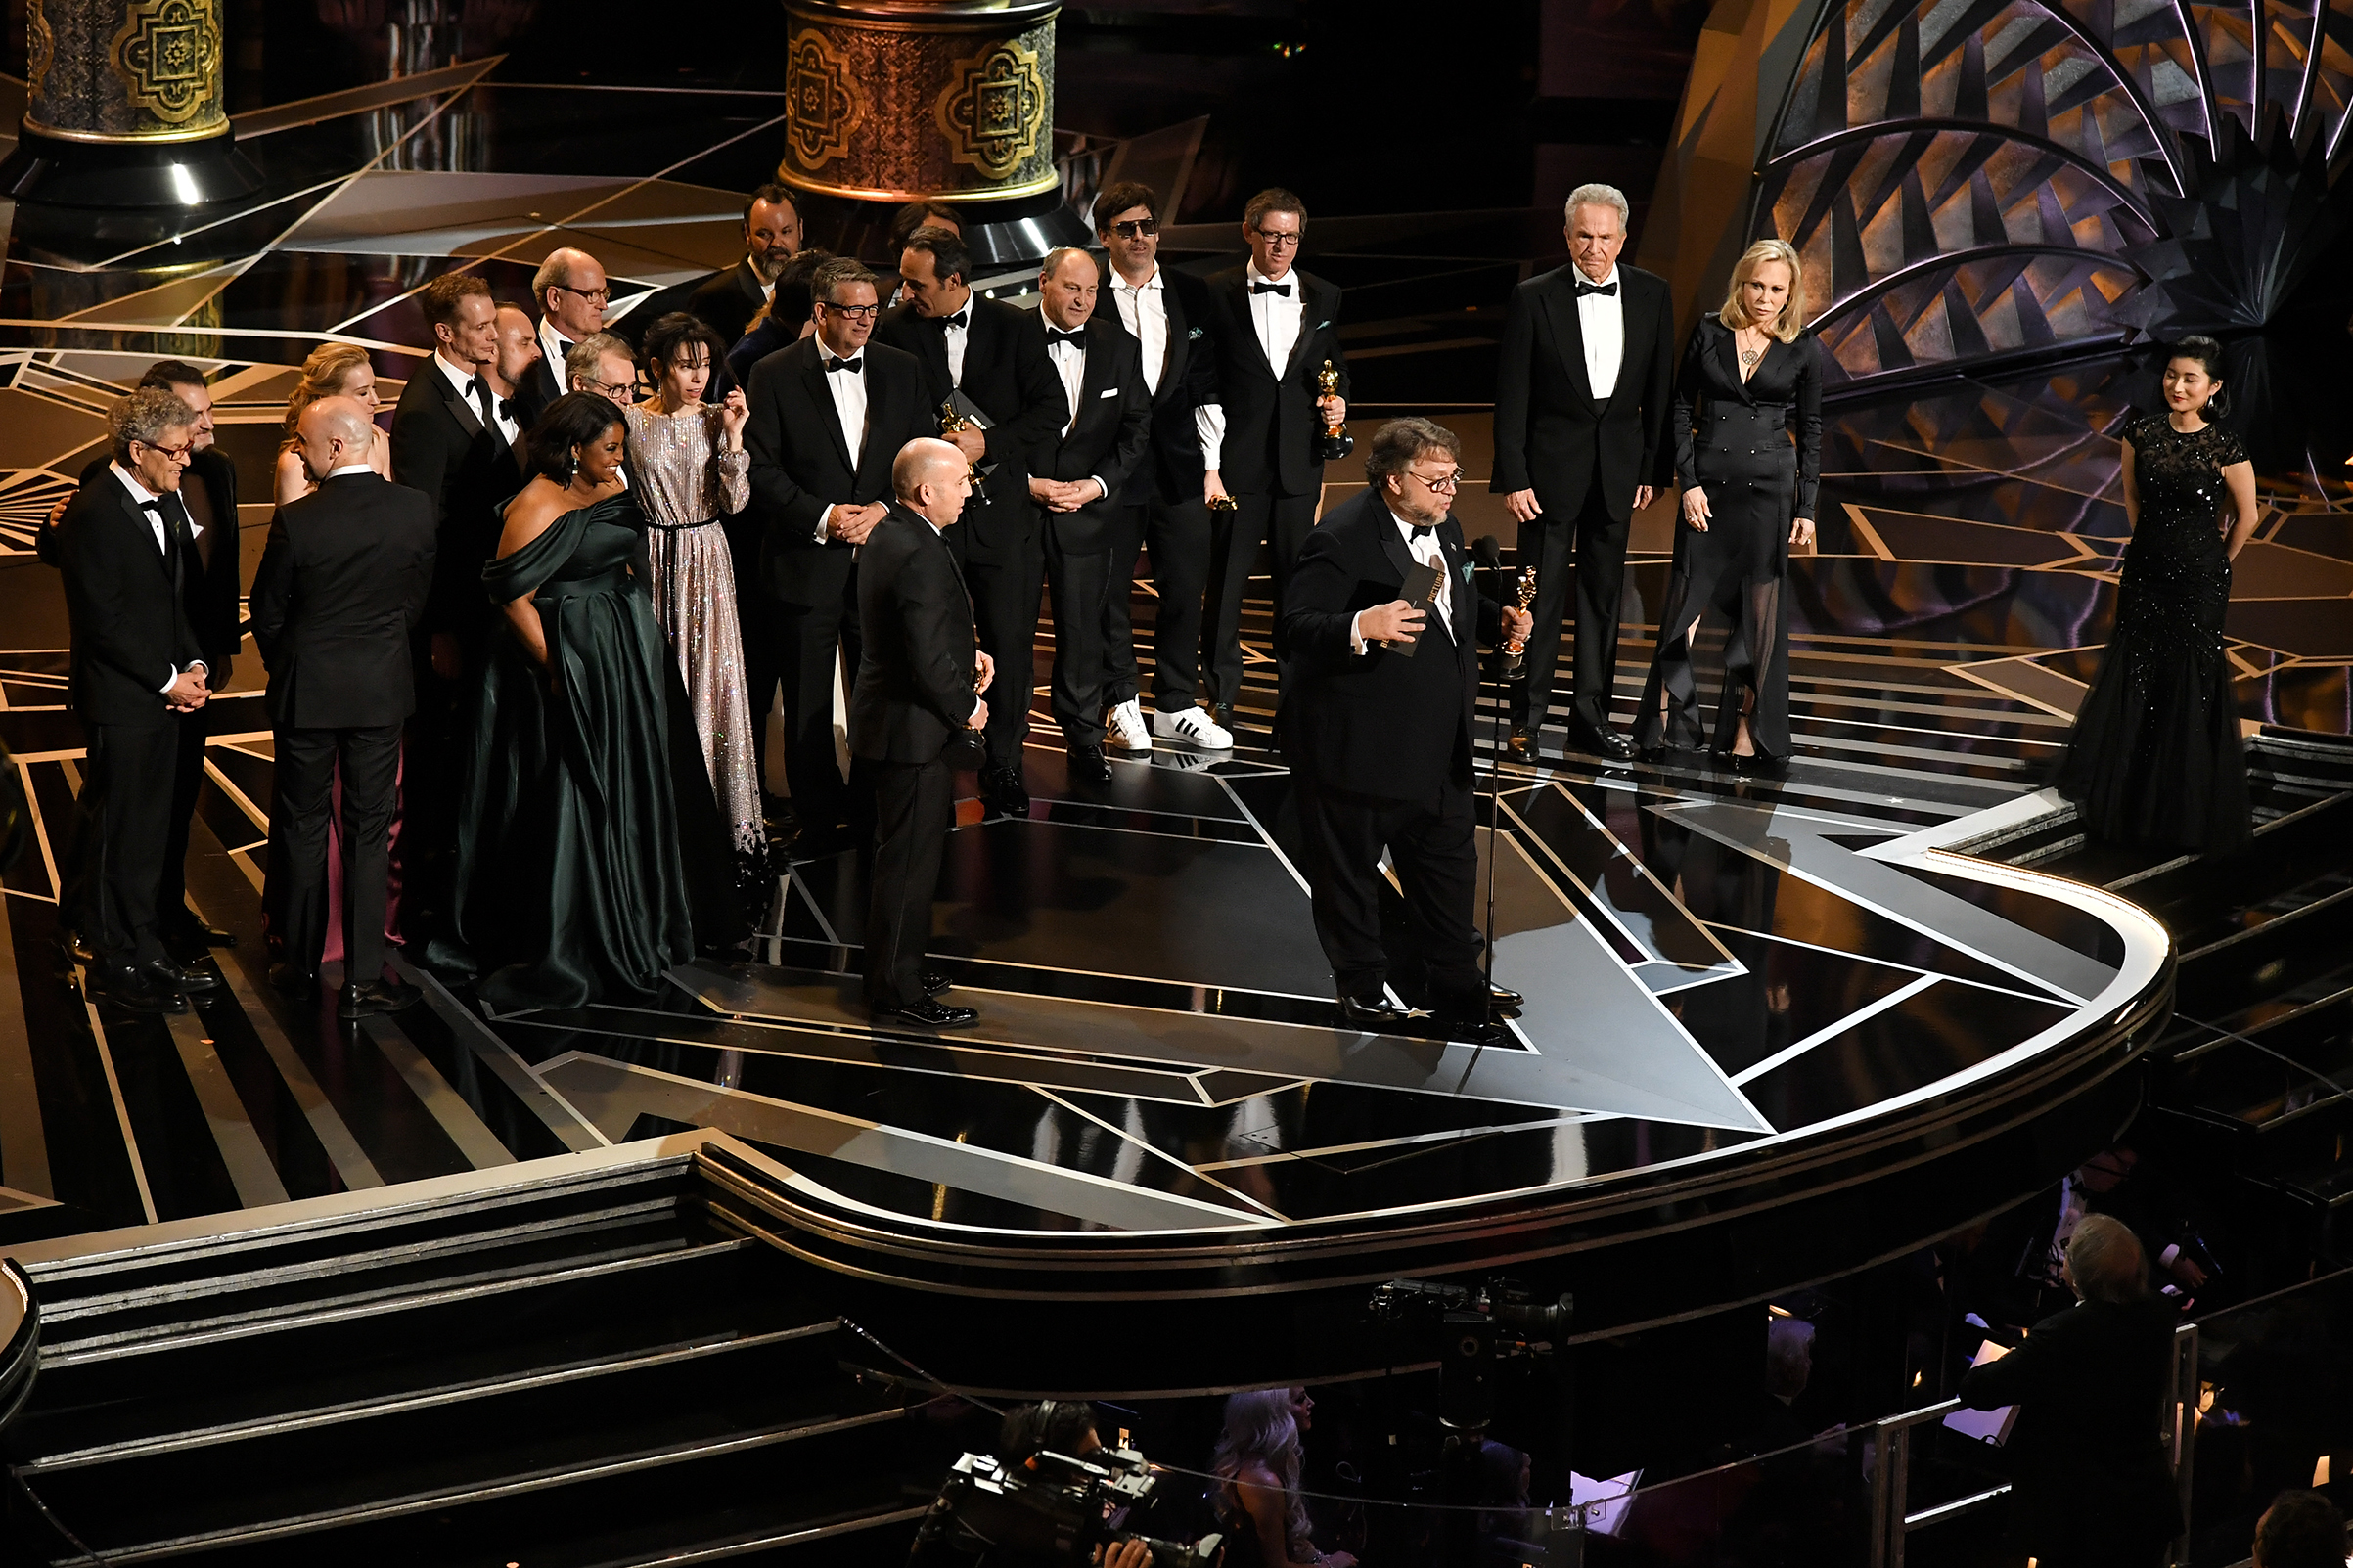 Guillermo del Toro with cast and crew 'The Shape Of Water' as they accept the award for Best Picture at the 90th Annual Academy Awards on March 4, 2018.